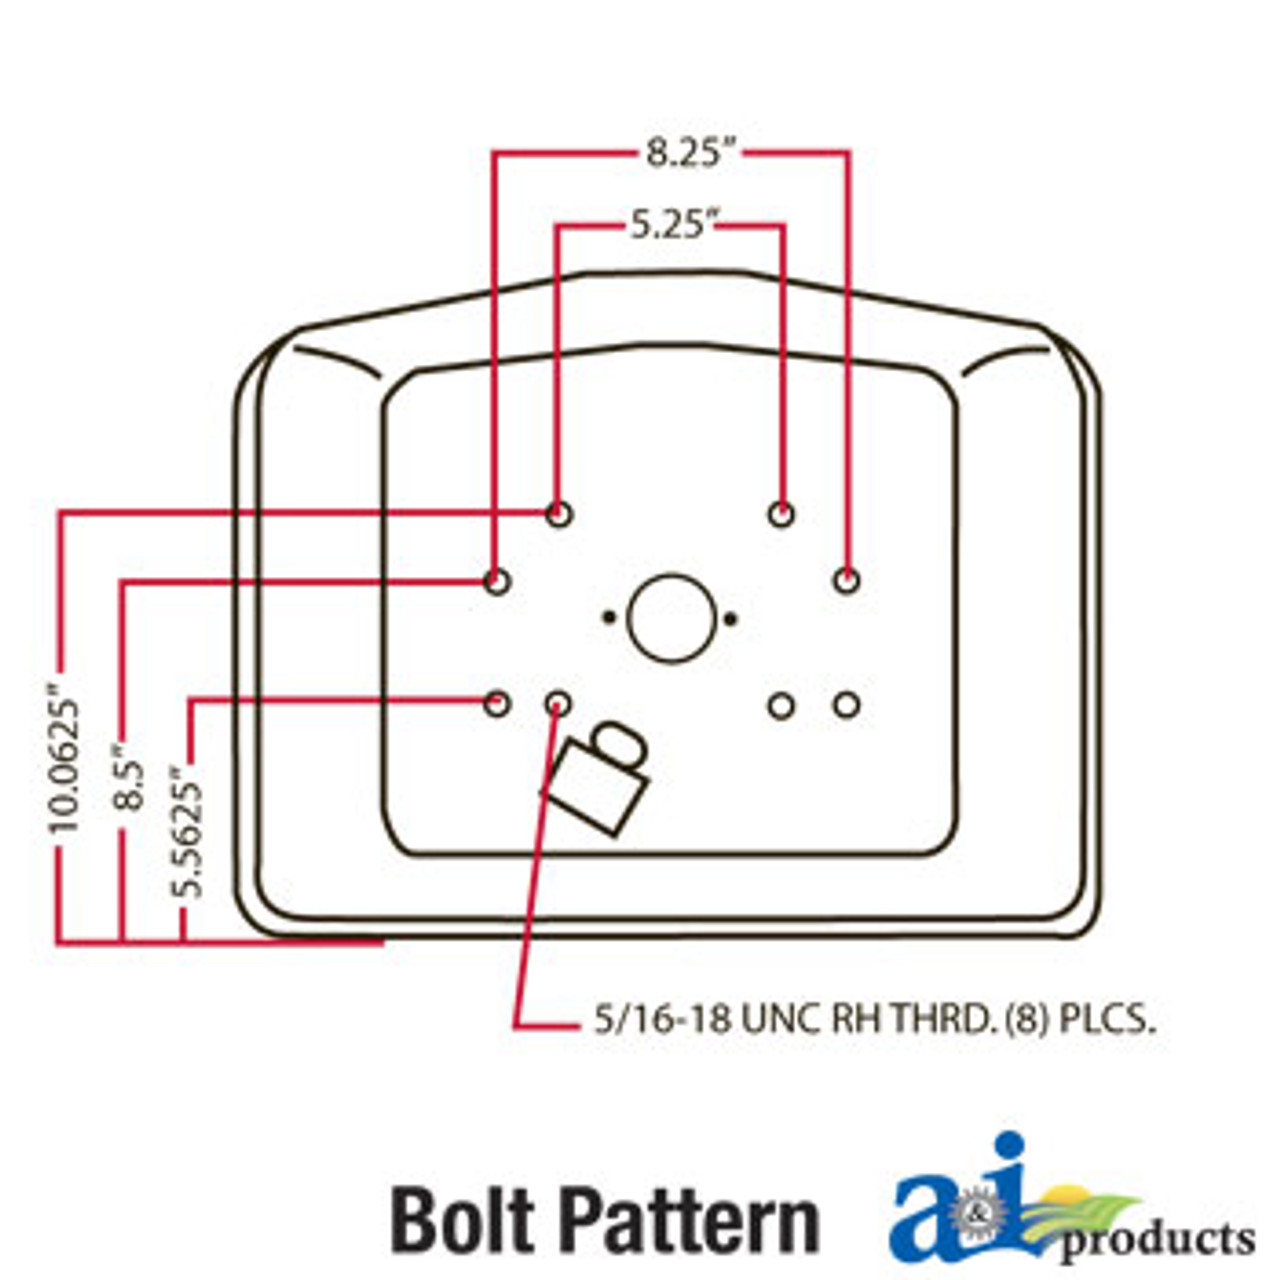 A&I nd John Deere Seat Low Back Ylw TY15861 John Deere S Wiring Diagram on john deere s4, john deere s80, john deere riding mower manuals, john deere riding lawn mower accessories, john deere mower w 38 l, john deere s82, john deere 210, john deere s40, john deere s45, john deere gx95, john deere s-92 manual, john deere mower deck parts, john deere s-92 deck, john deere d140, john deere s10,